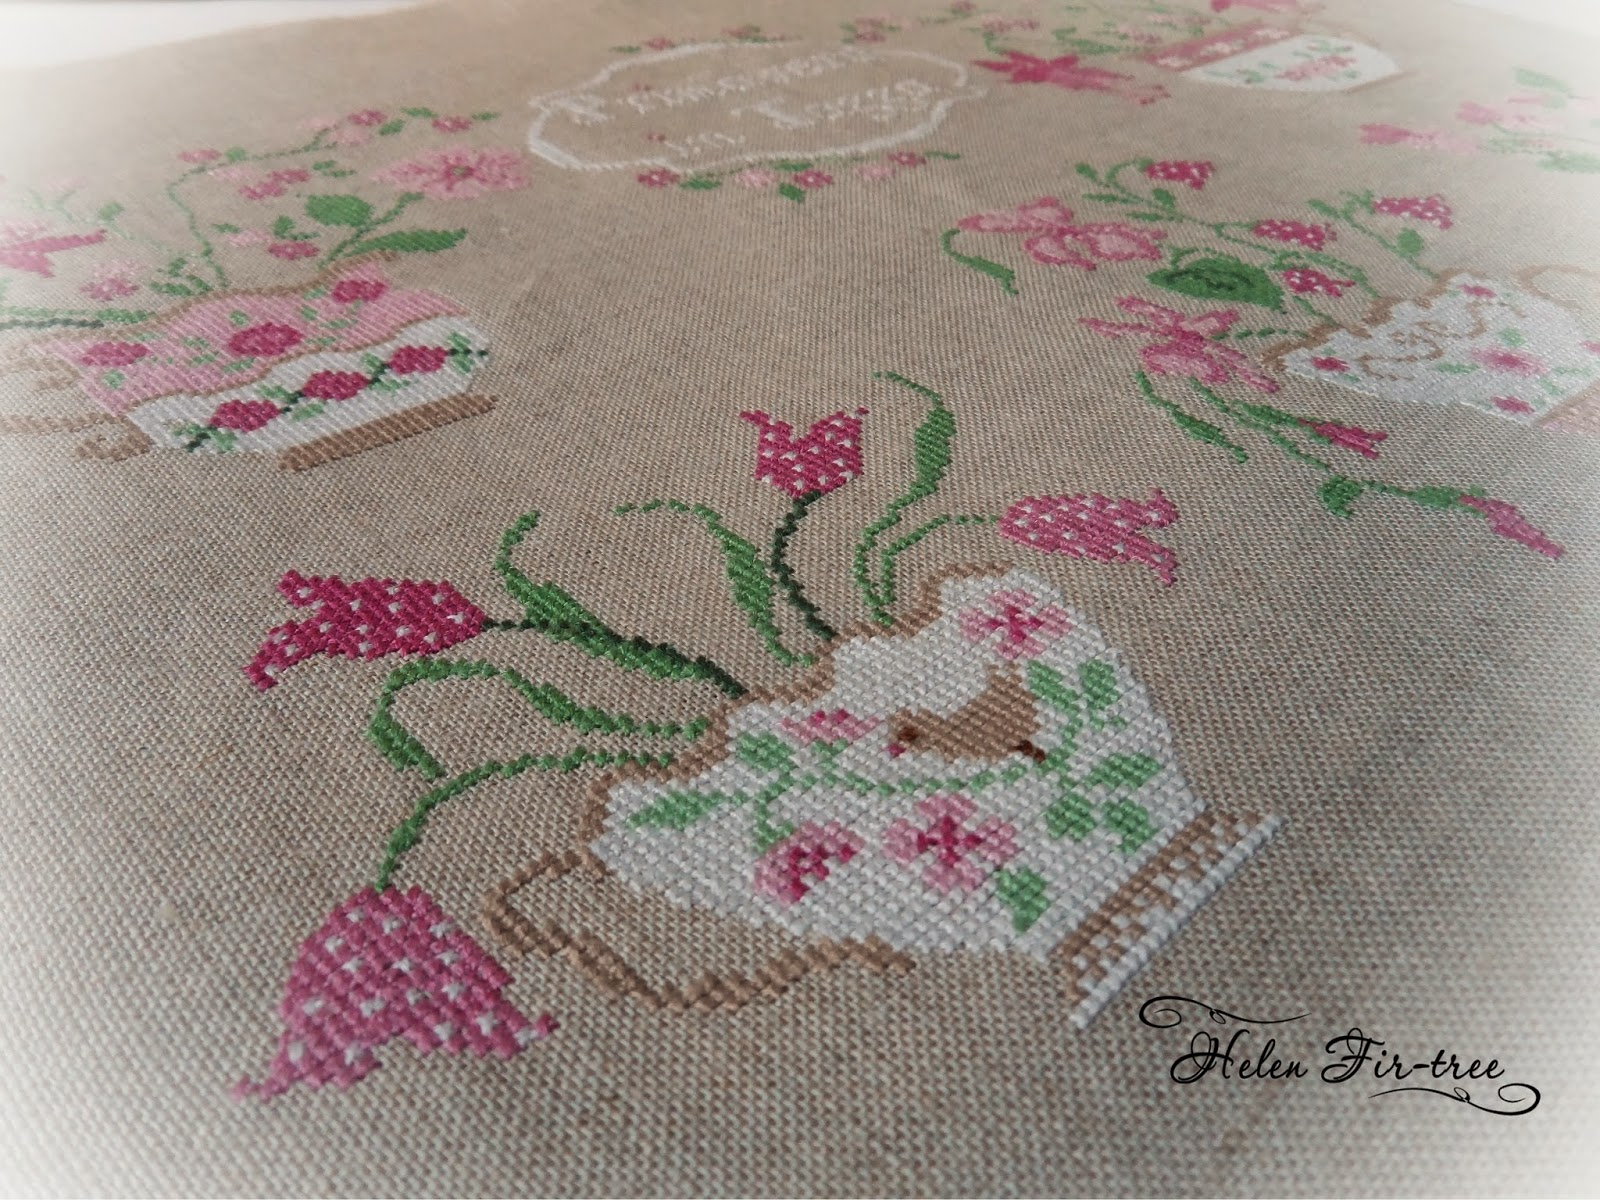 Helen Fir-tree вышивка крестом cross-stitch Primavera in Tassa